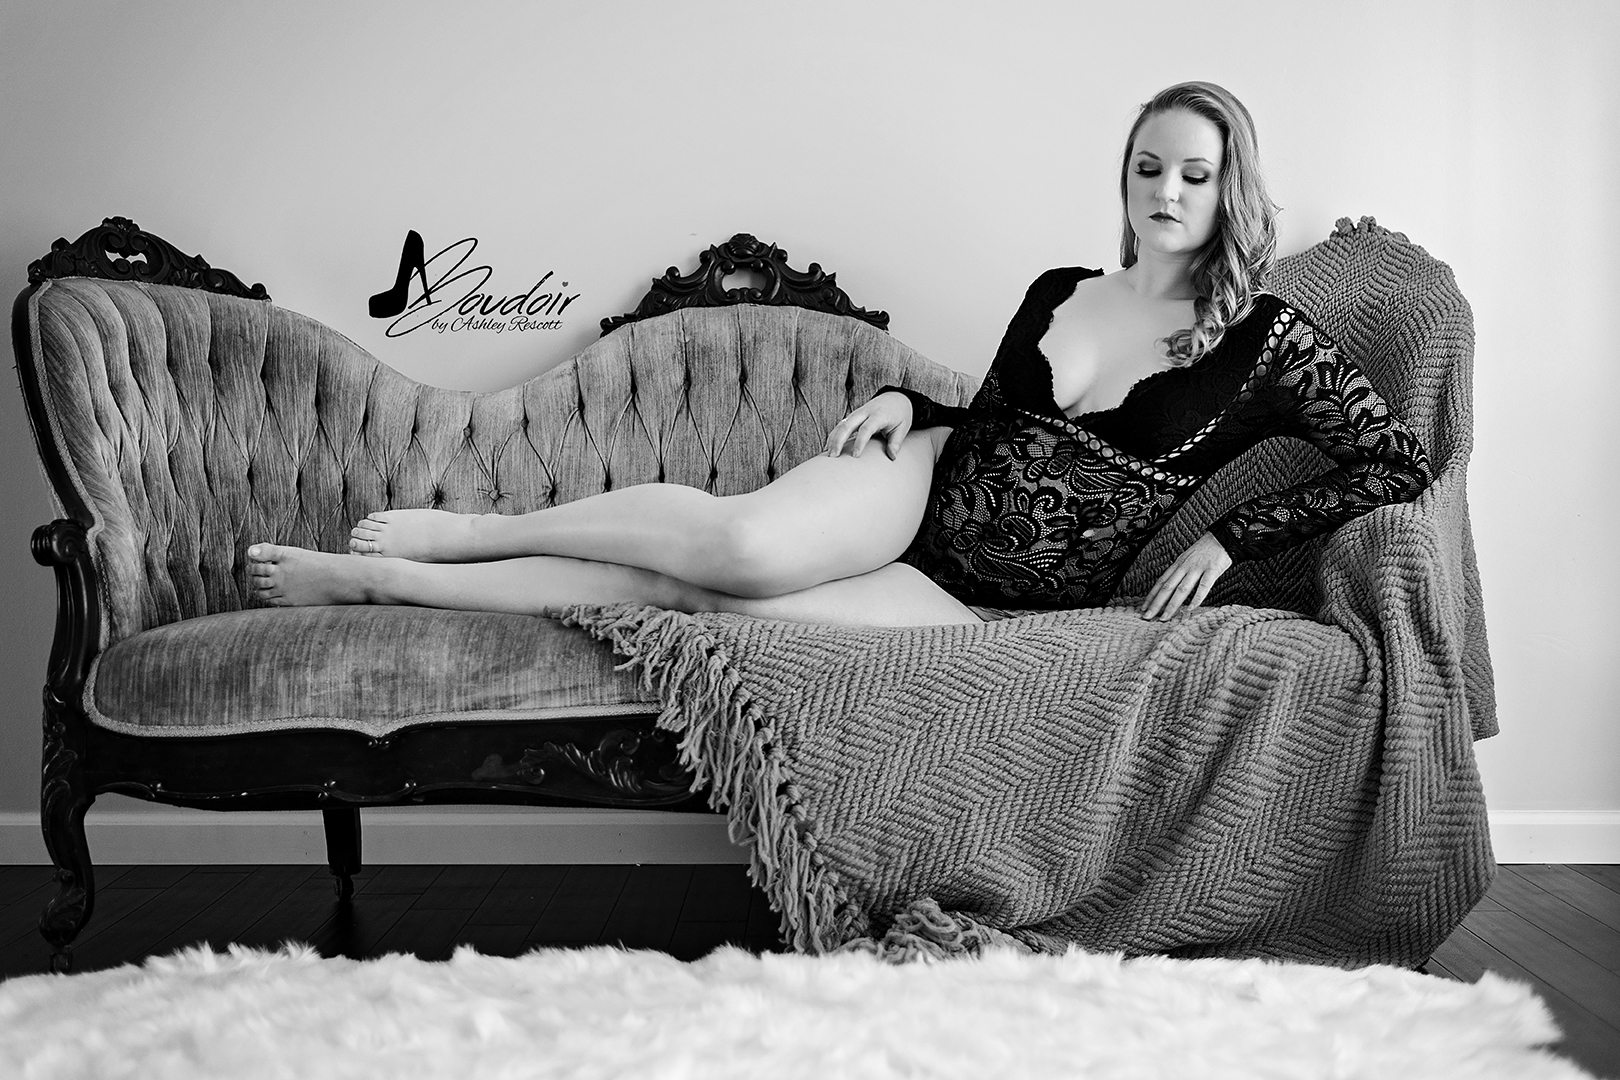 black and white image of woman lounging on couch